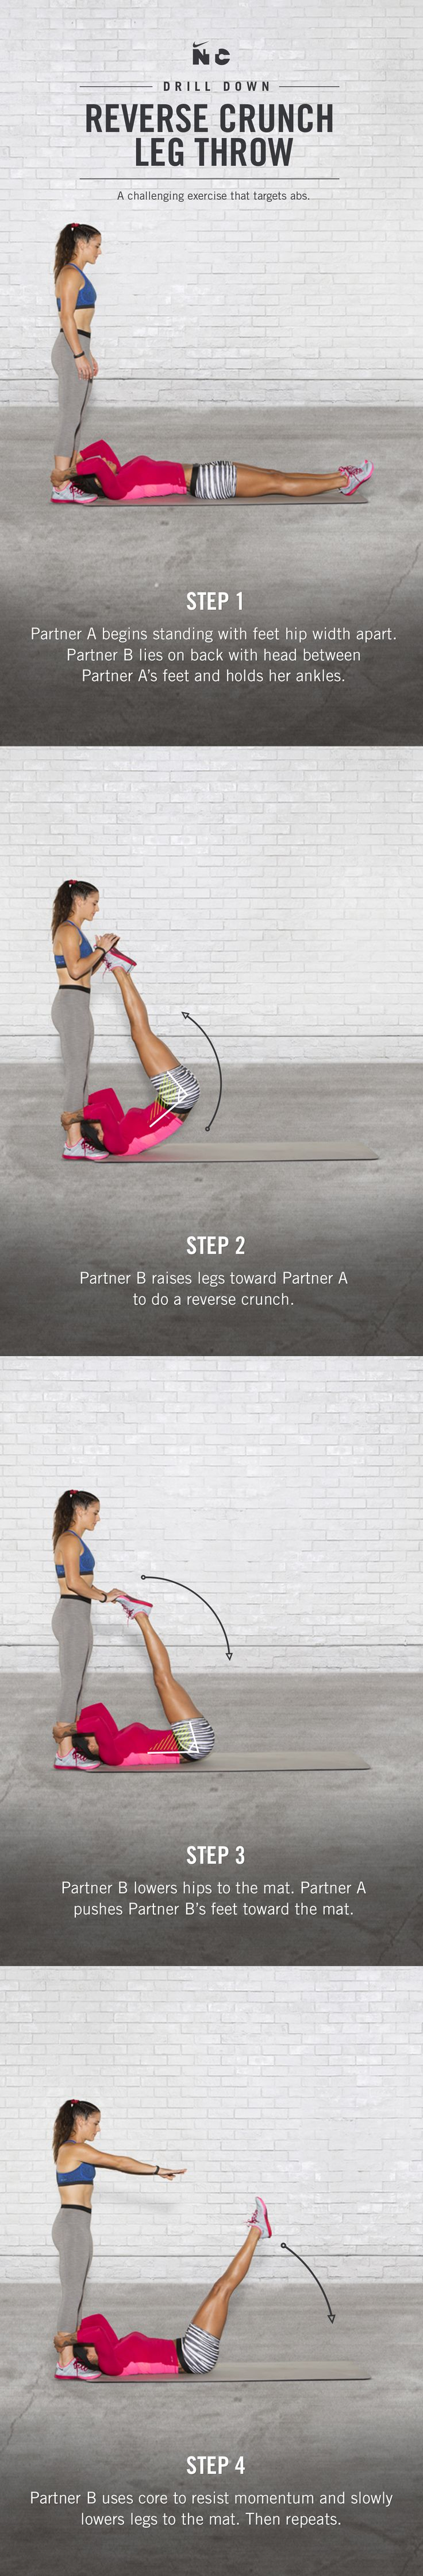 Strengthen your core with the Reverse Crunch Leg Throws in Sydney Leroux and Ali Krieger's Dynamic Duo partner workout on Nike+ Training Club.